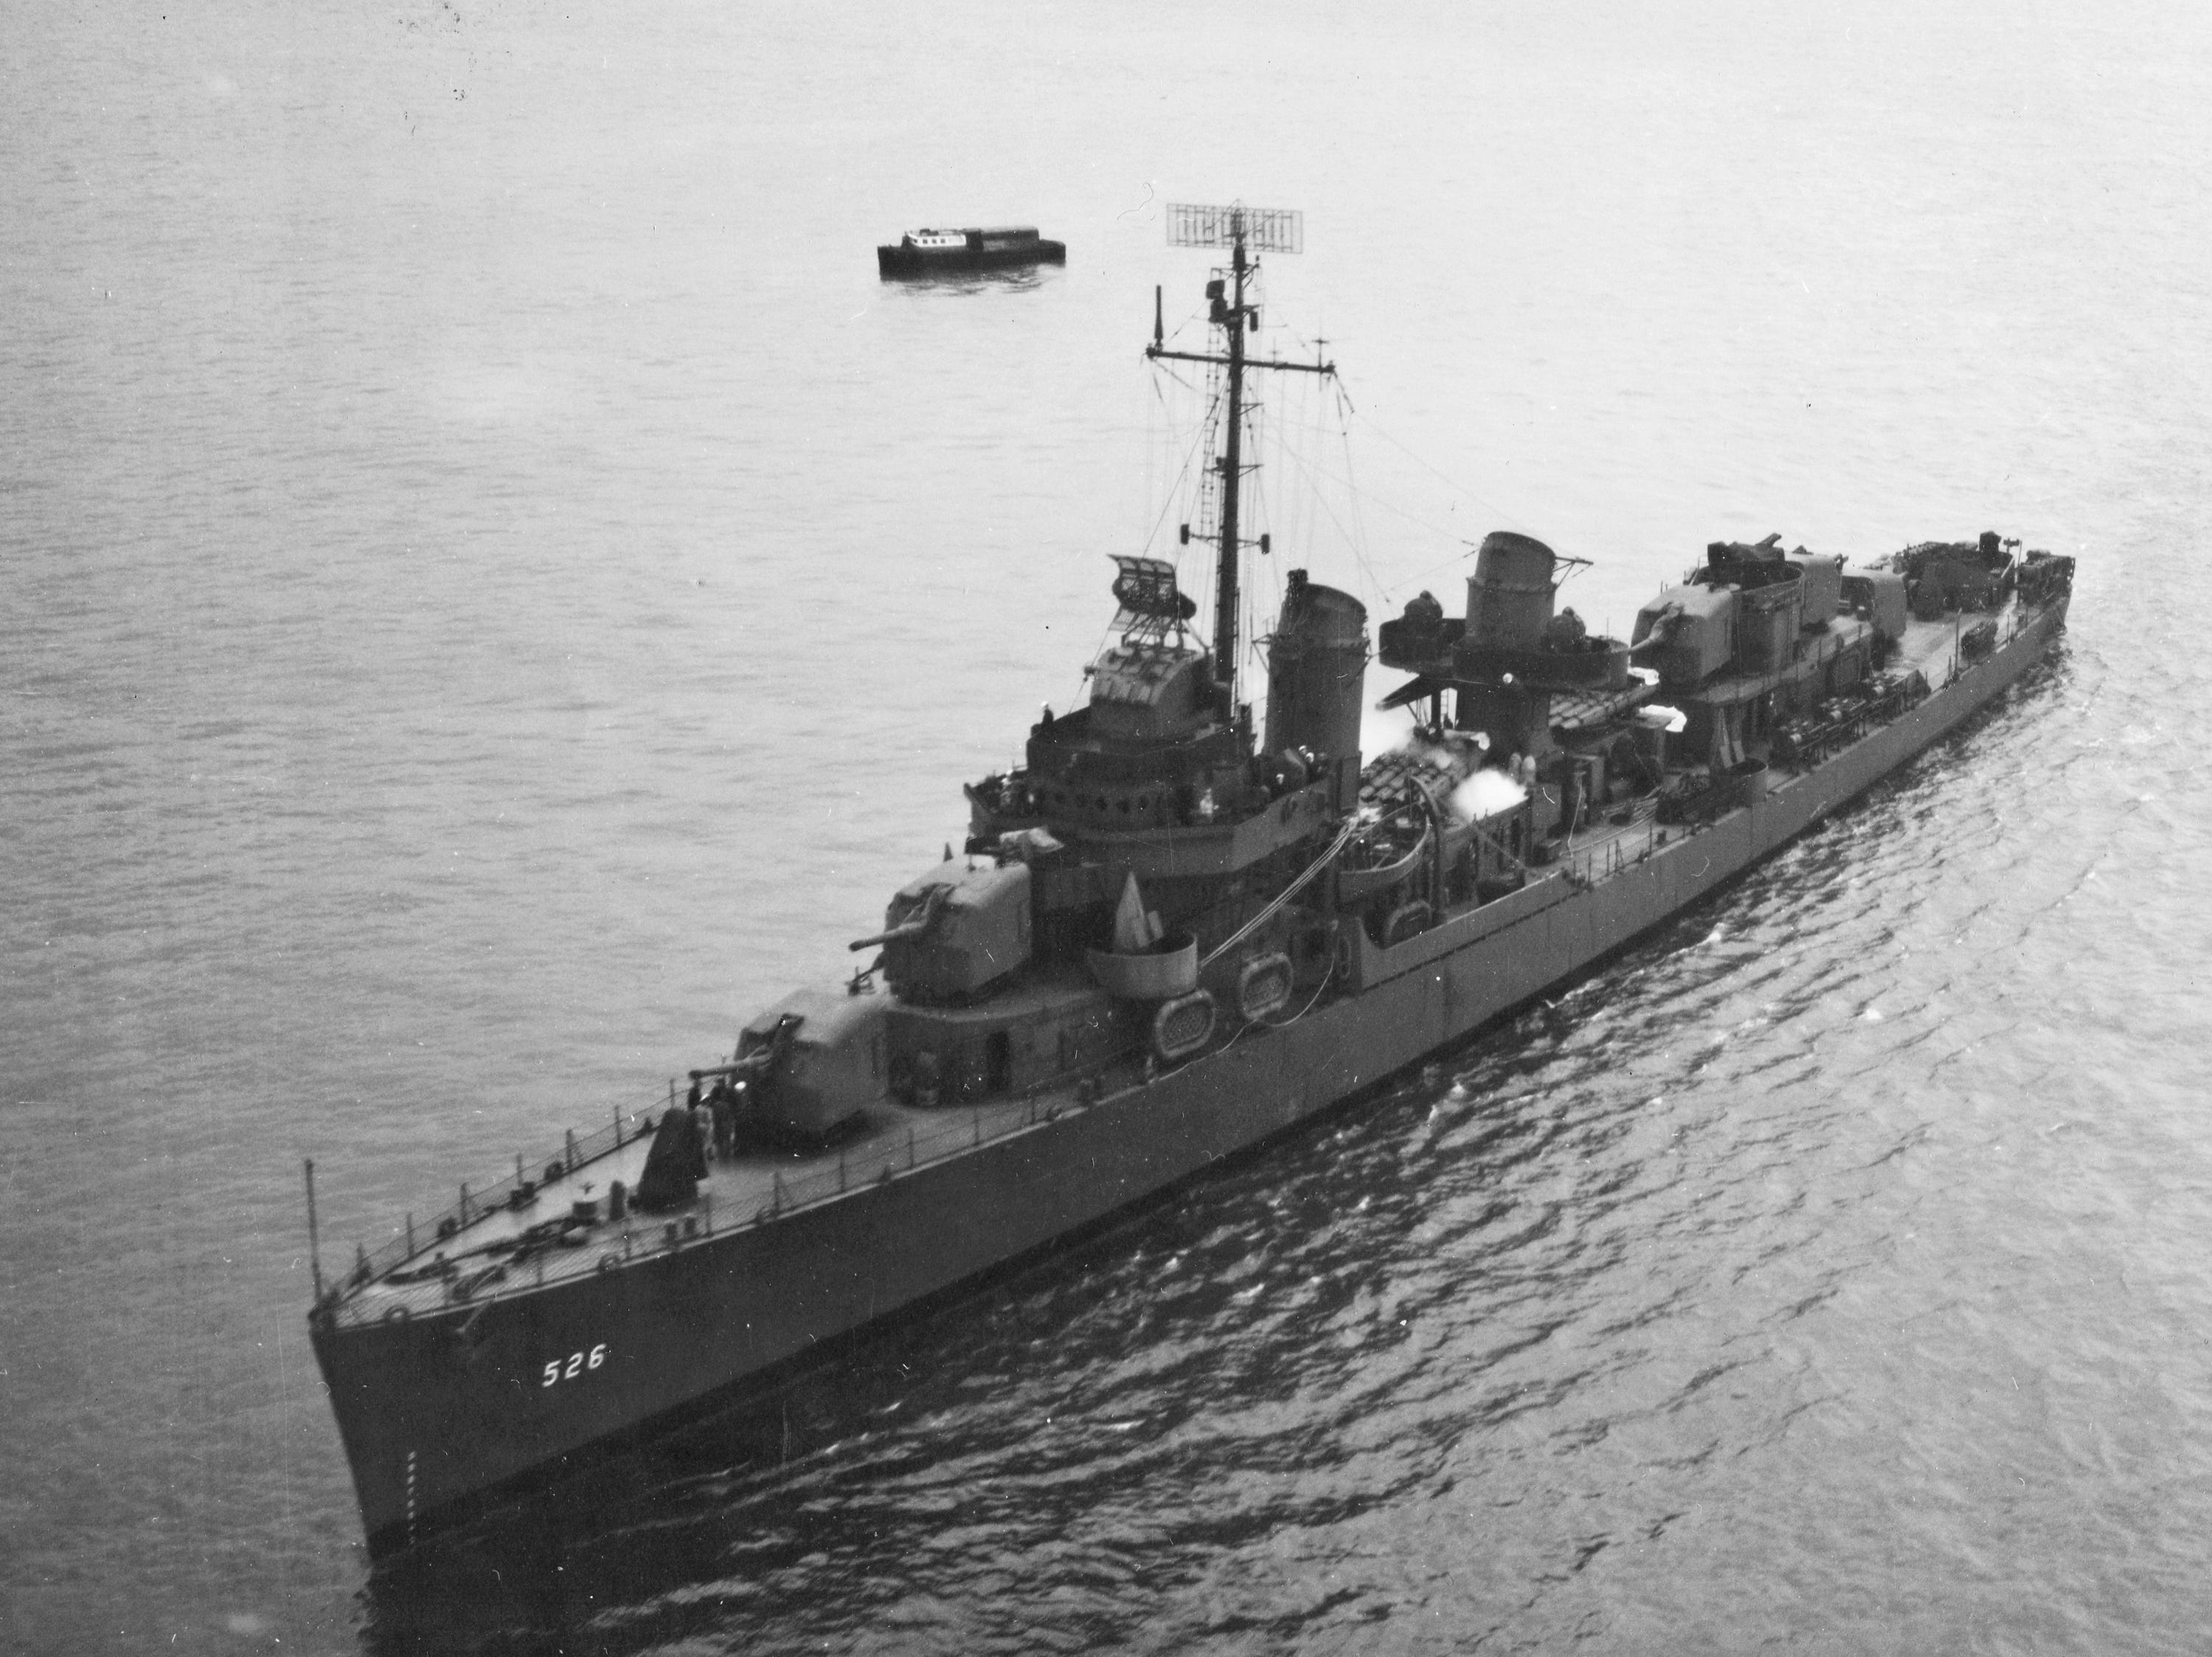 This undated U.S. Navy photo, provided by the National Archives, shows the destroyer USS Abner Read at sea. The Abner Read hit a mine left by the Japanese after they abandoned Kiska Island in Alaska's Aleutian Islands in 1943, ripping the stern off. But the ship never sank and was refitted and returned to duty. Now, 75 years after the ship's stern broke off, it has been located off Kiska by a team of scientists funded by the U.S. government. (U.S. Navy/National Archives via AP)